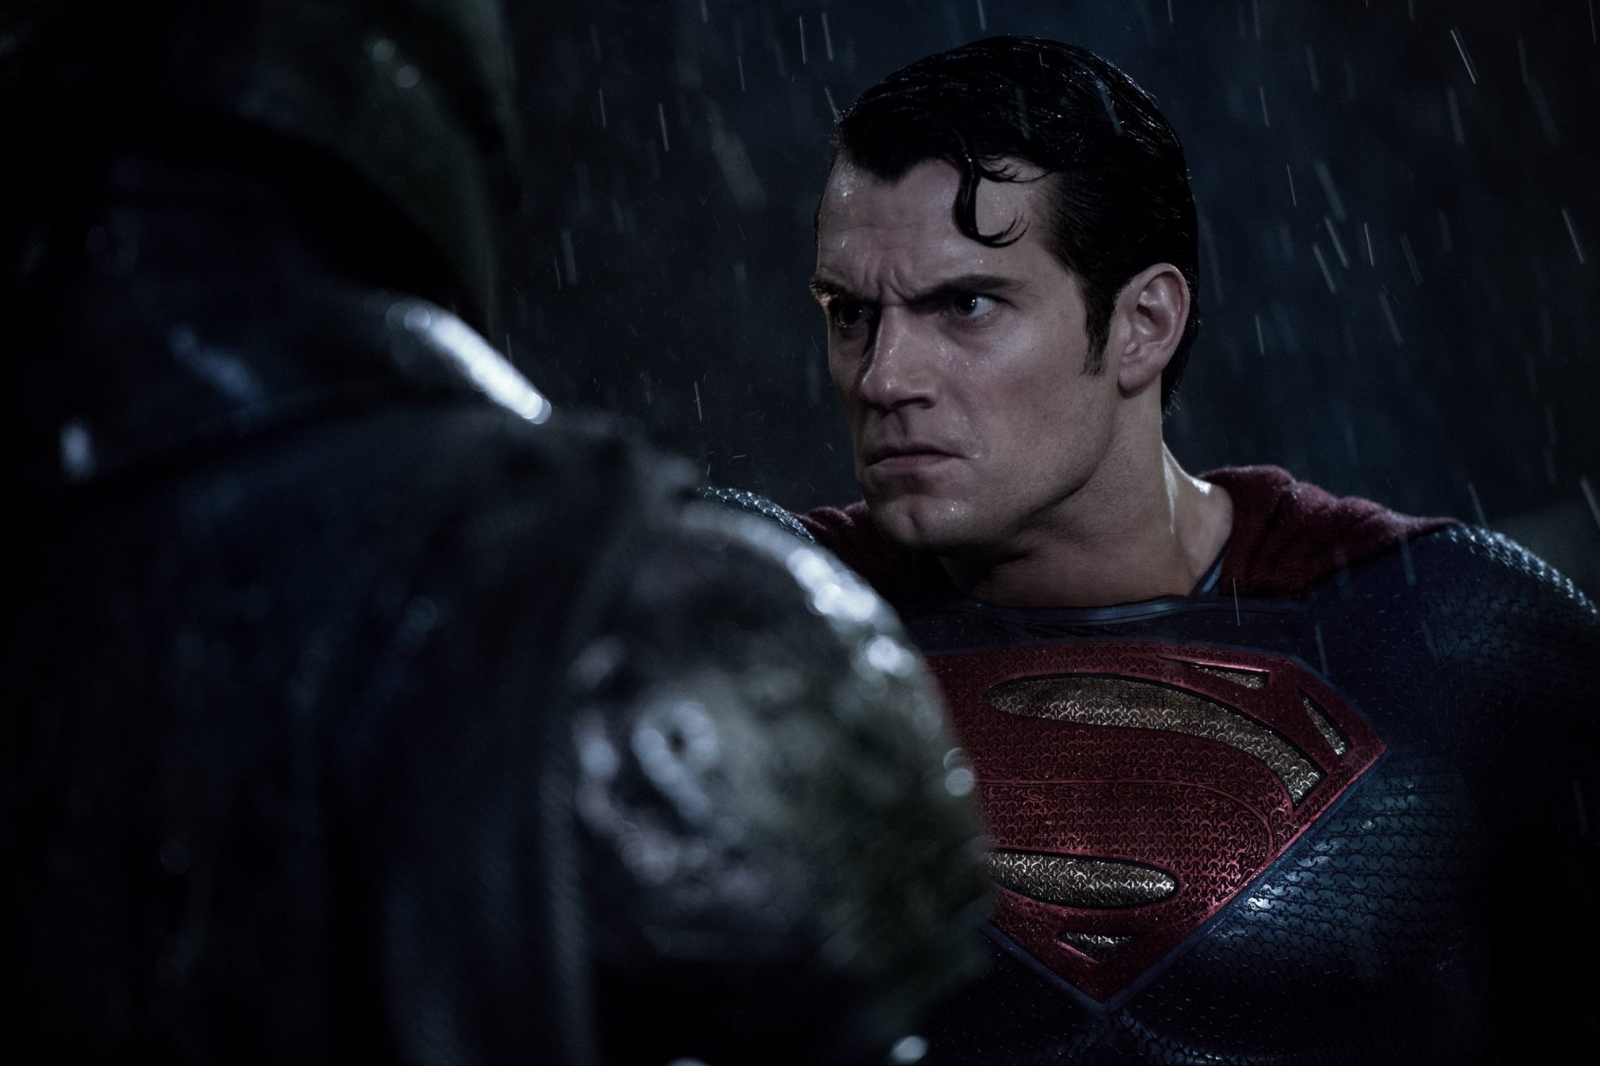 Superman v Black Adam smackdown: Dwayne Johnson promises Henry Cavill clash is 'coming'